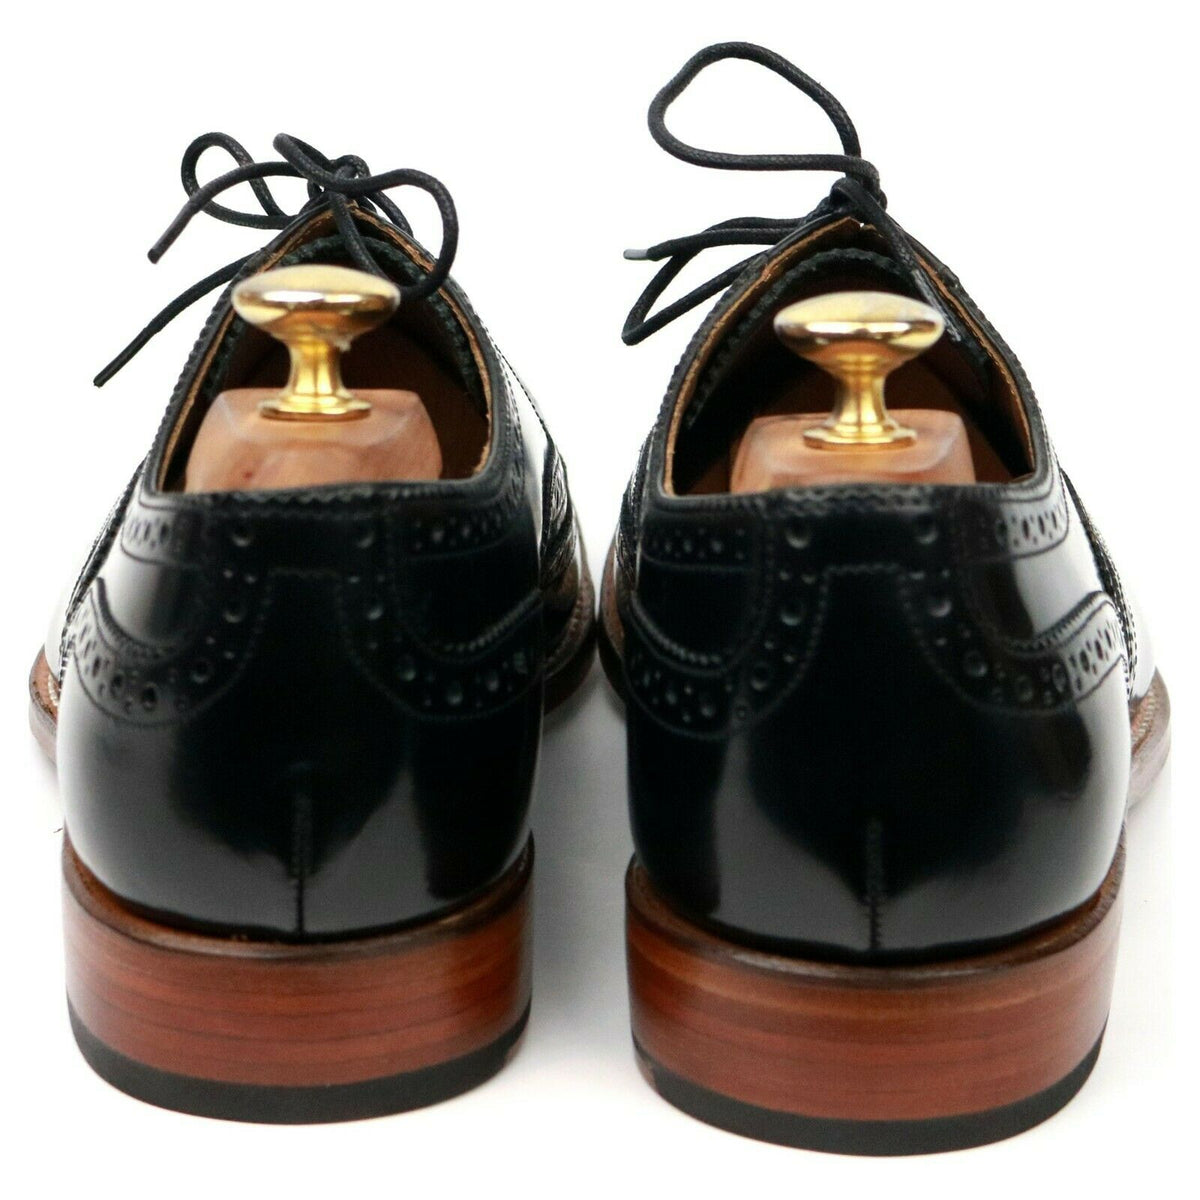 Grenson 'Dylan' Black Leather Brogues UK 9 F